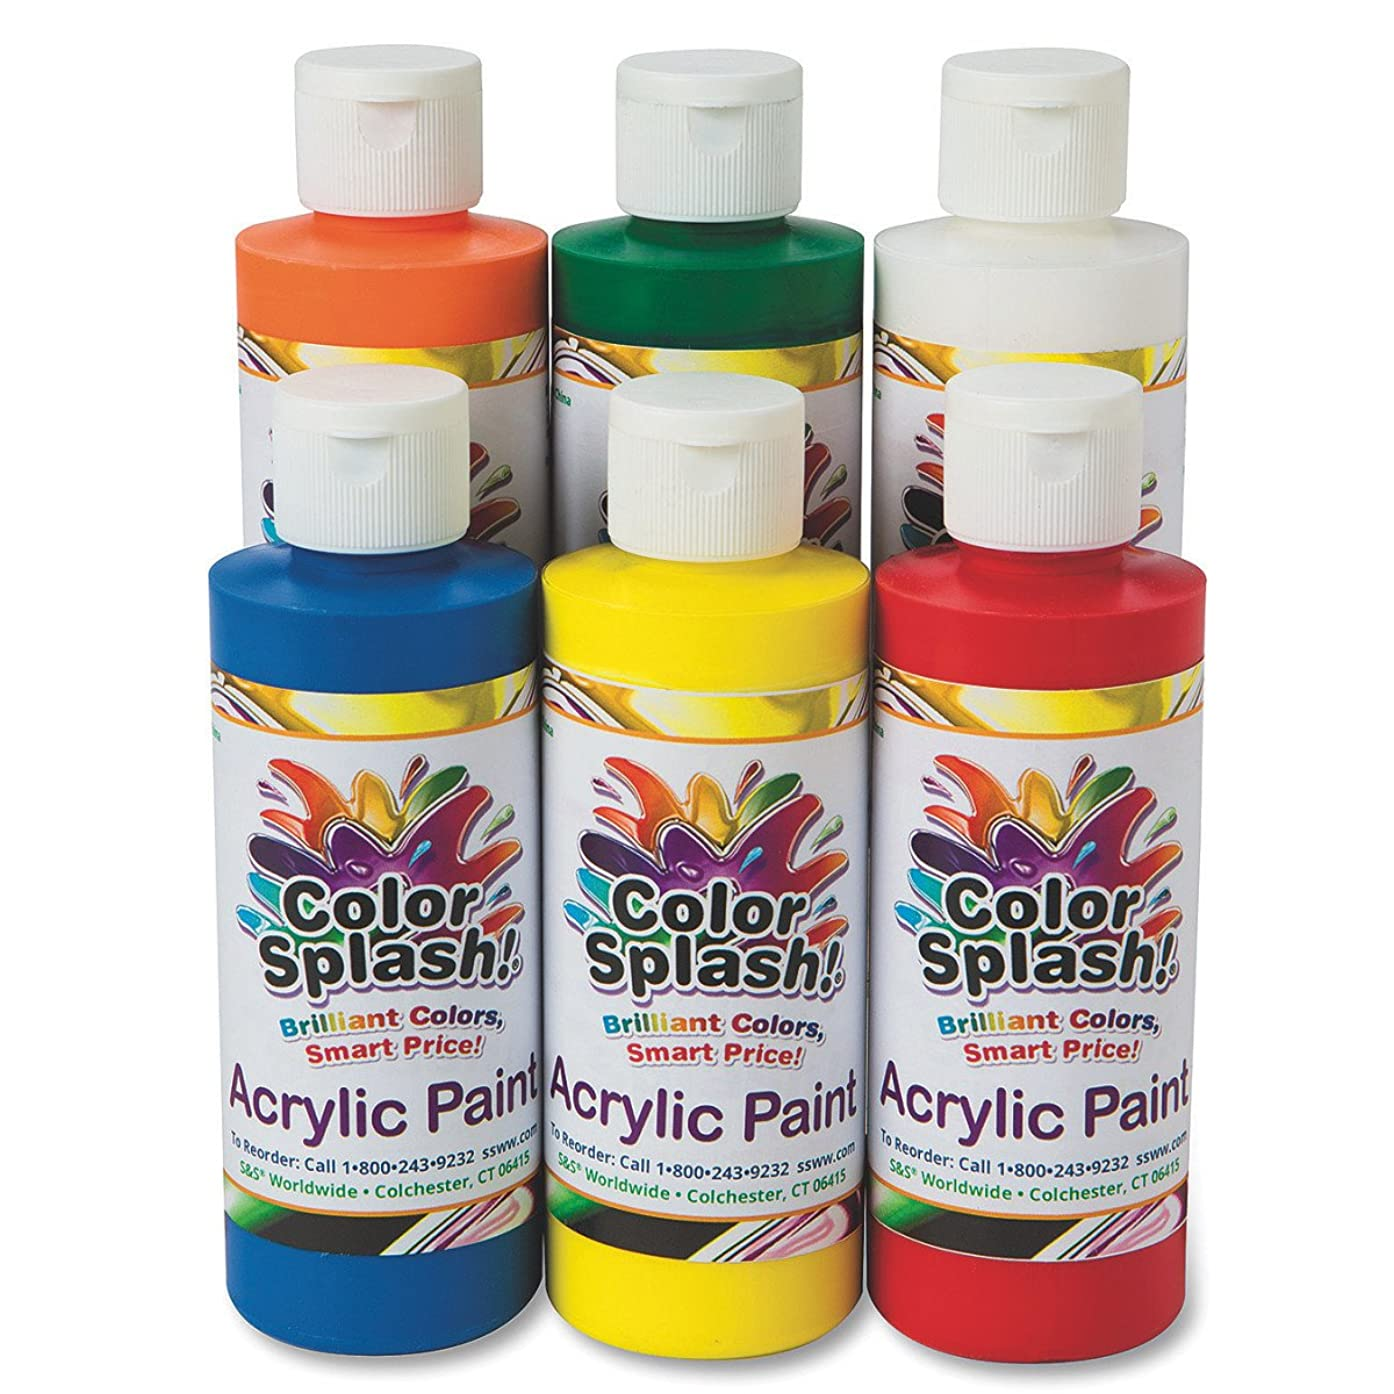 8 oz. Color Splash! Acrylic Paint Assortment